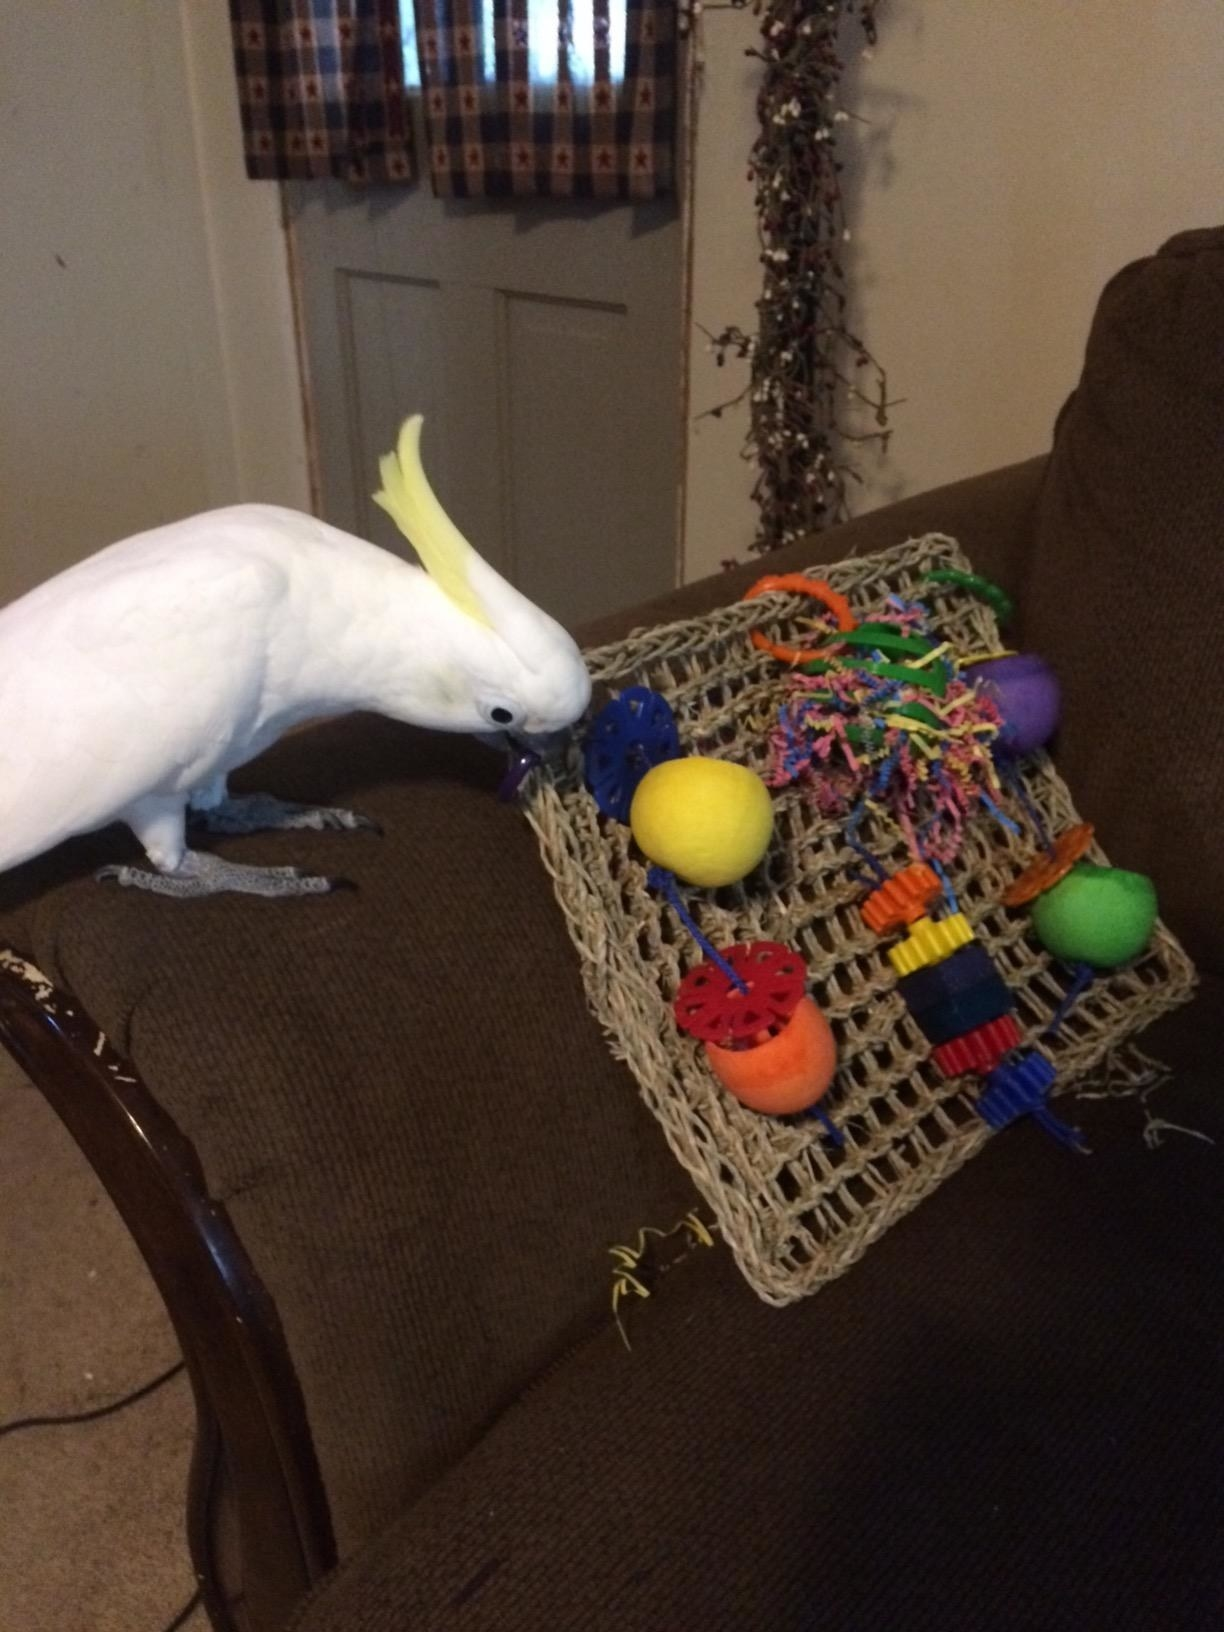 A cockatoo playing with the play mat, which is made of woven sea grass, and has cups, beads, and confetti paper hanging from it